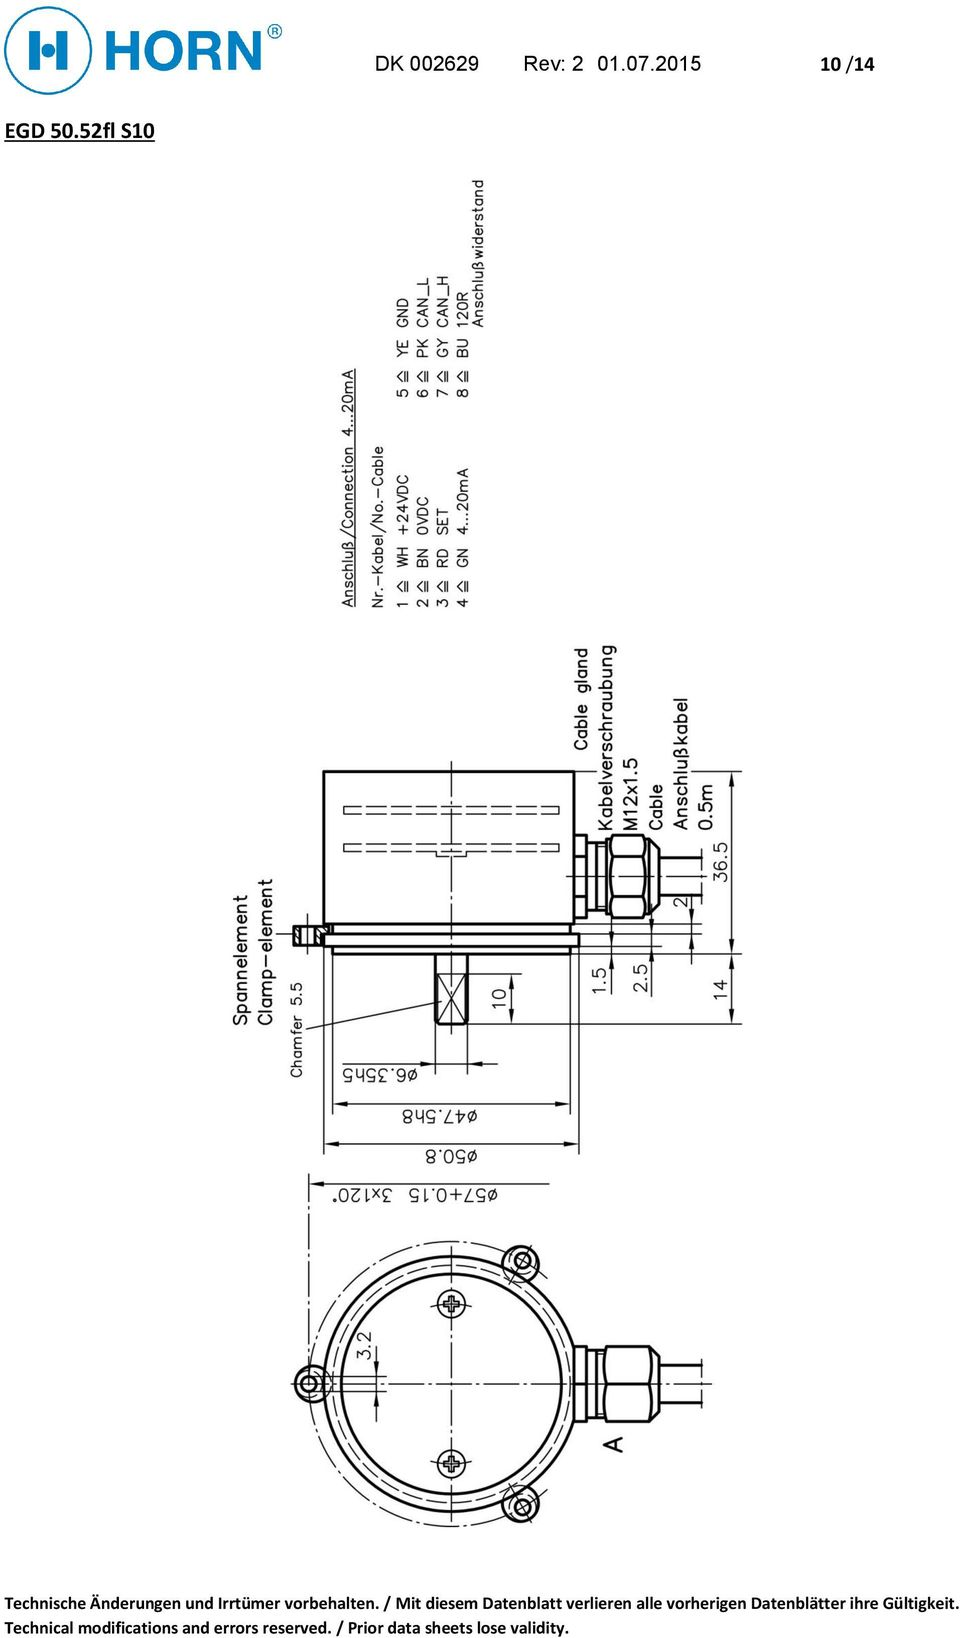 Sensors Monitoring Systems Pdf Switches Are Operated By Controllers Connected To The Switch By3wire 2015 10 14